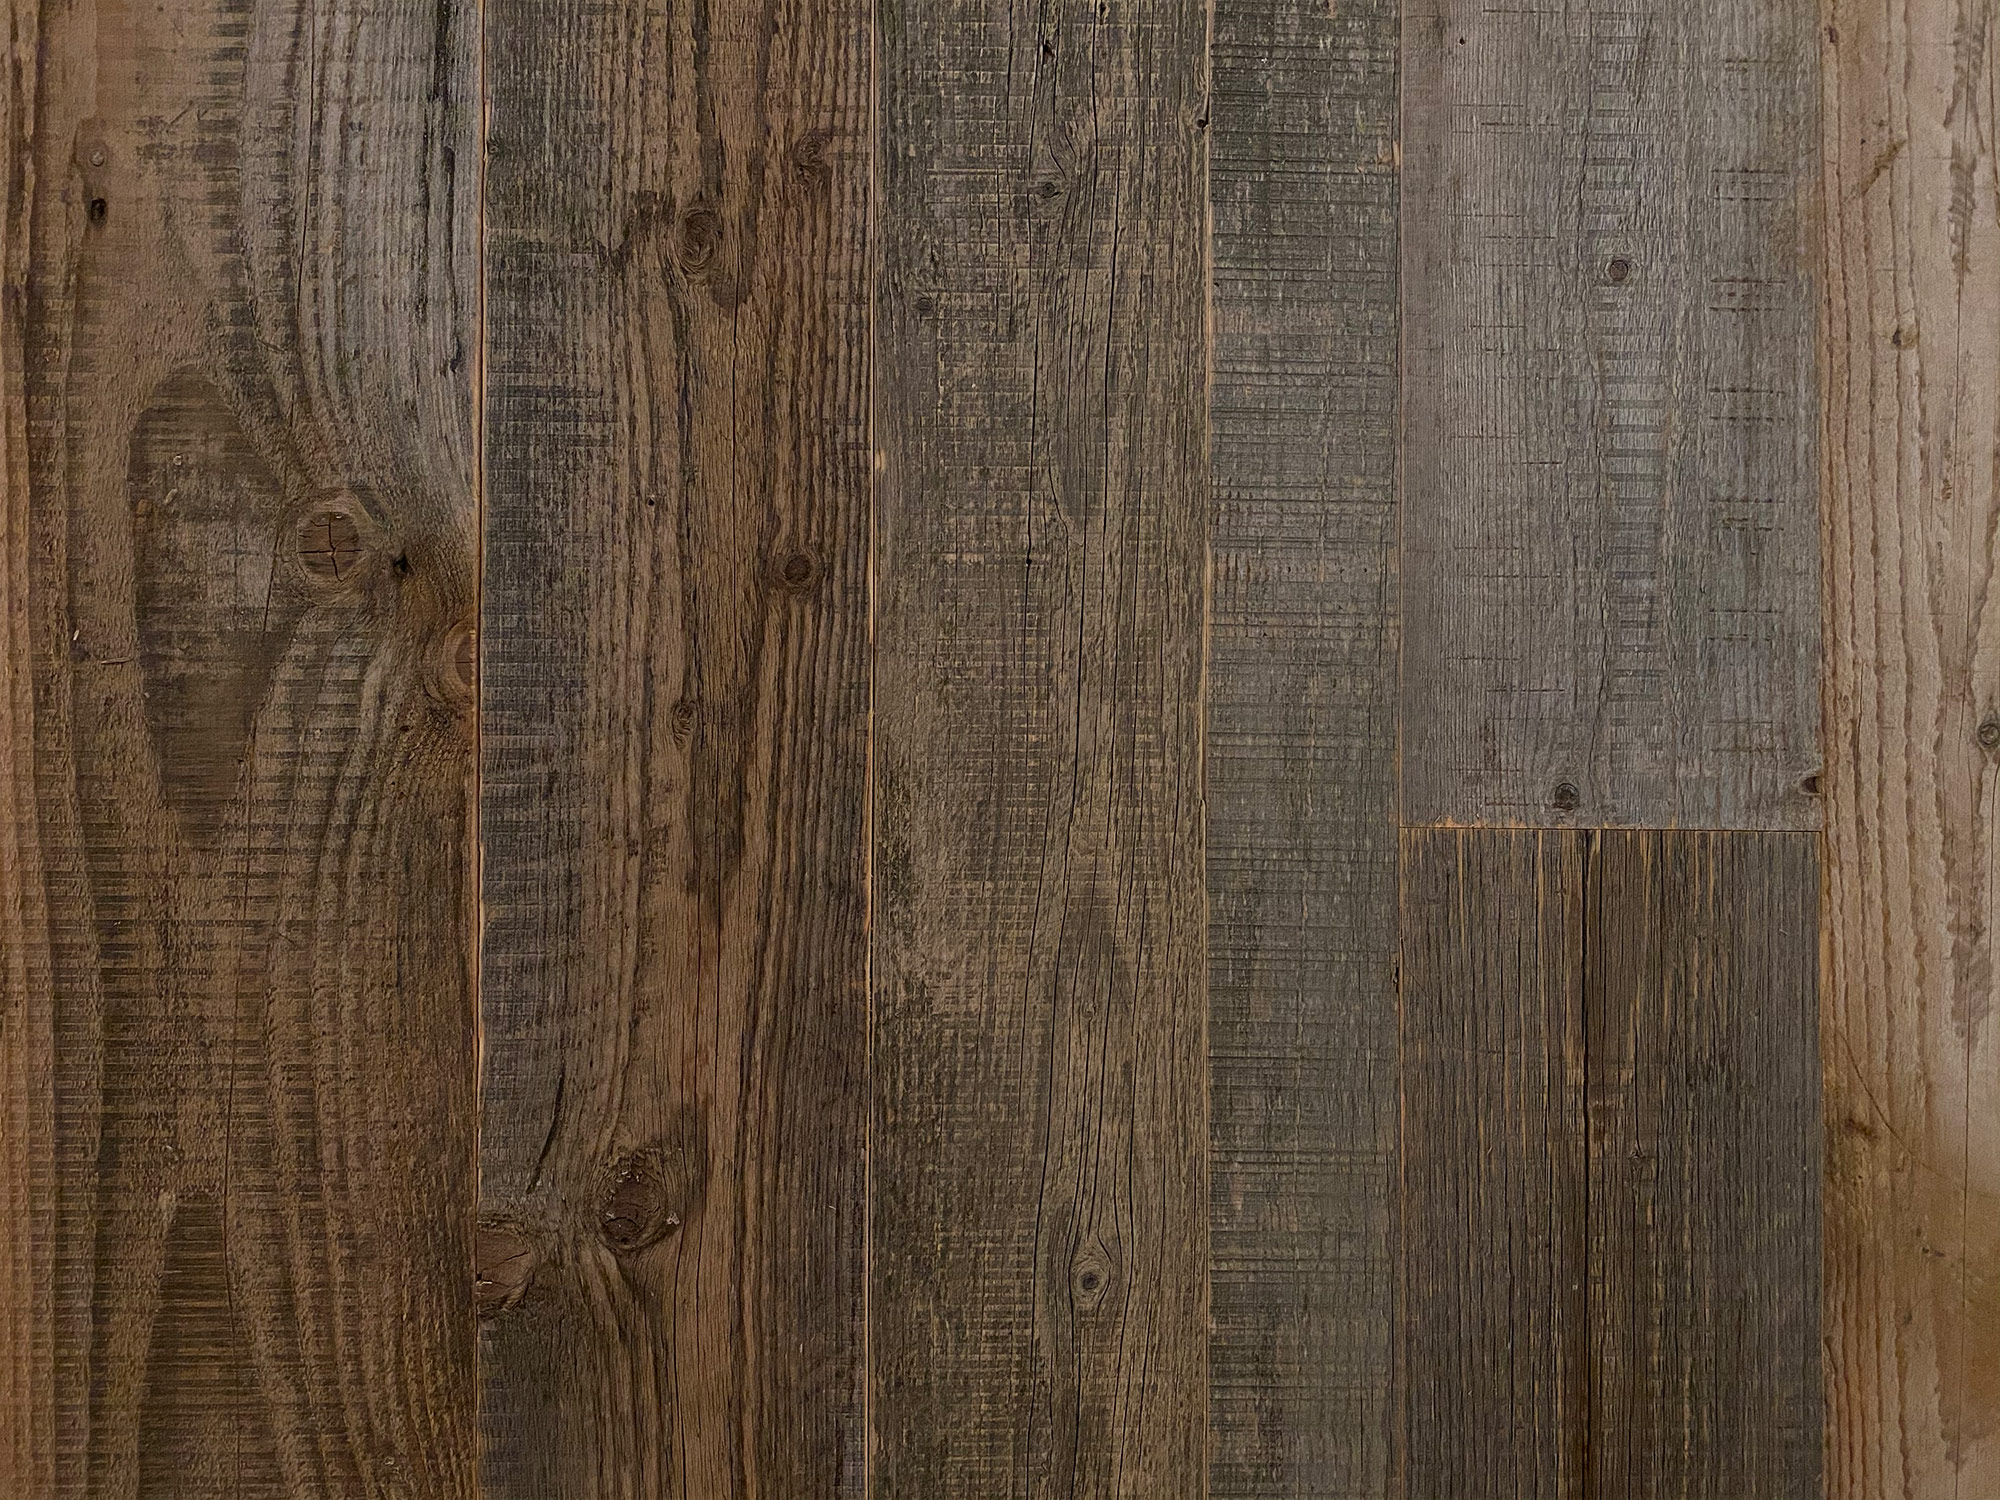 Sample board of reclaimed cladding